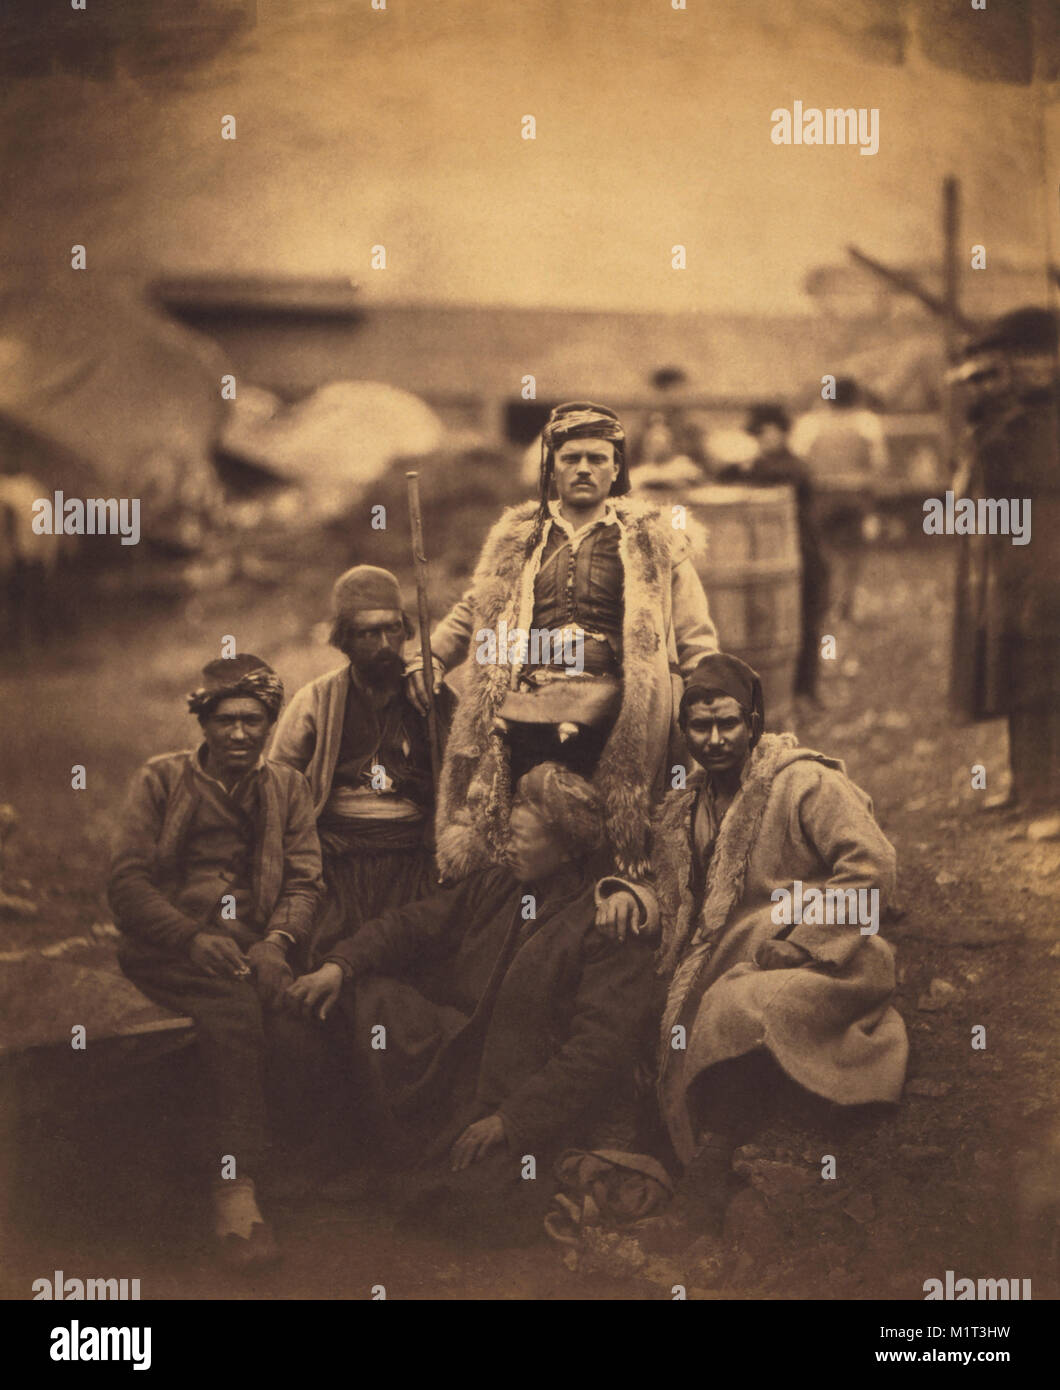 Group of Croat Laborers, Seated Portrait, Crimean War, Crimea, Ukraine, by Roger Fenton, 1855 - Stock Image